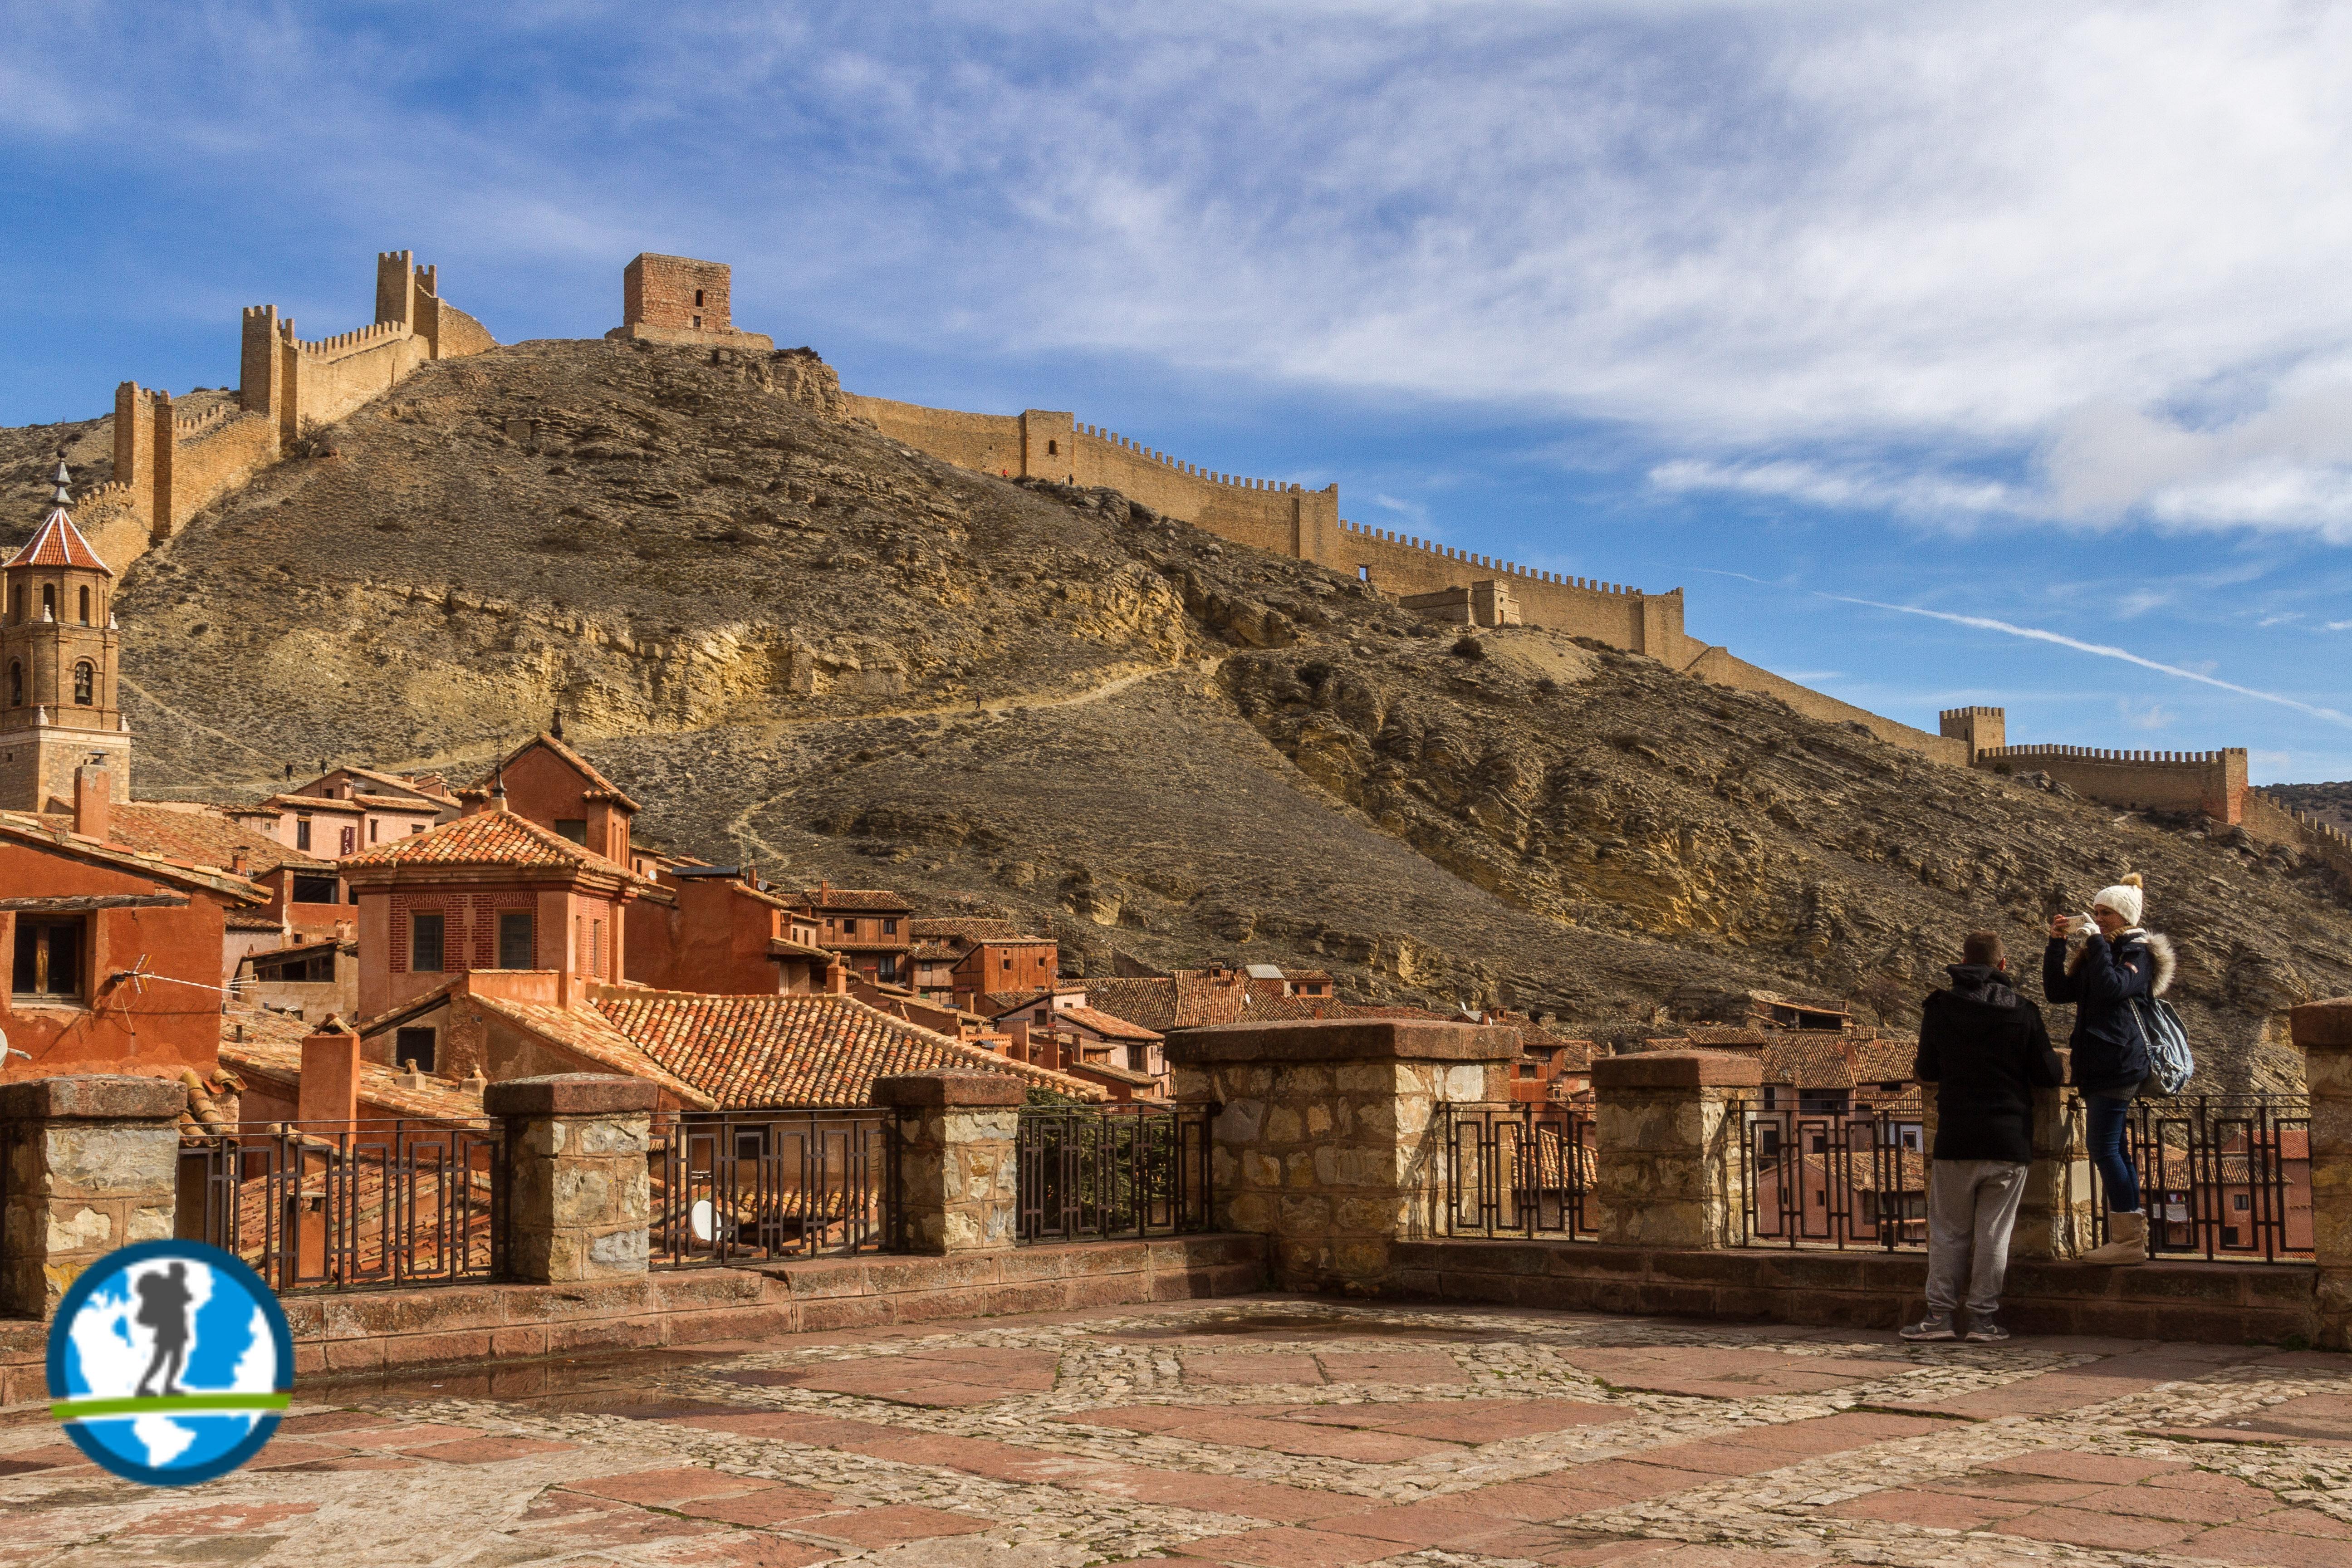 Picture of Albarracin with castle walls in the background.